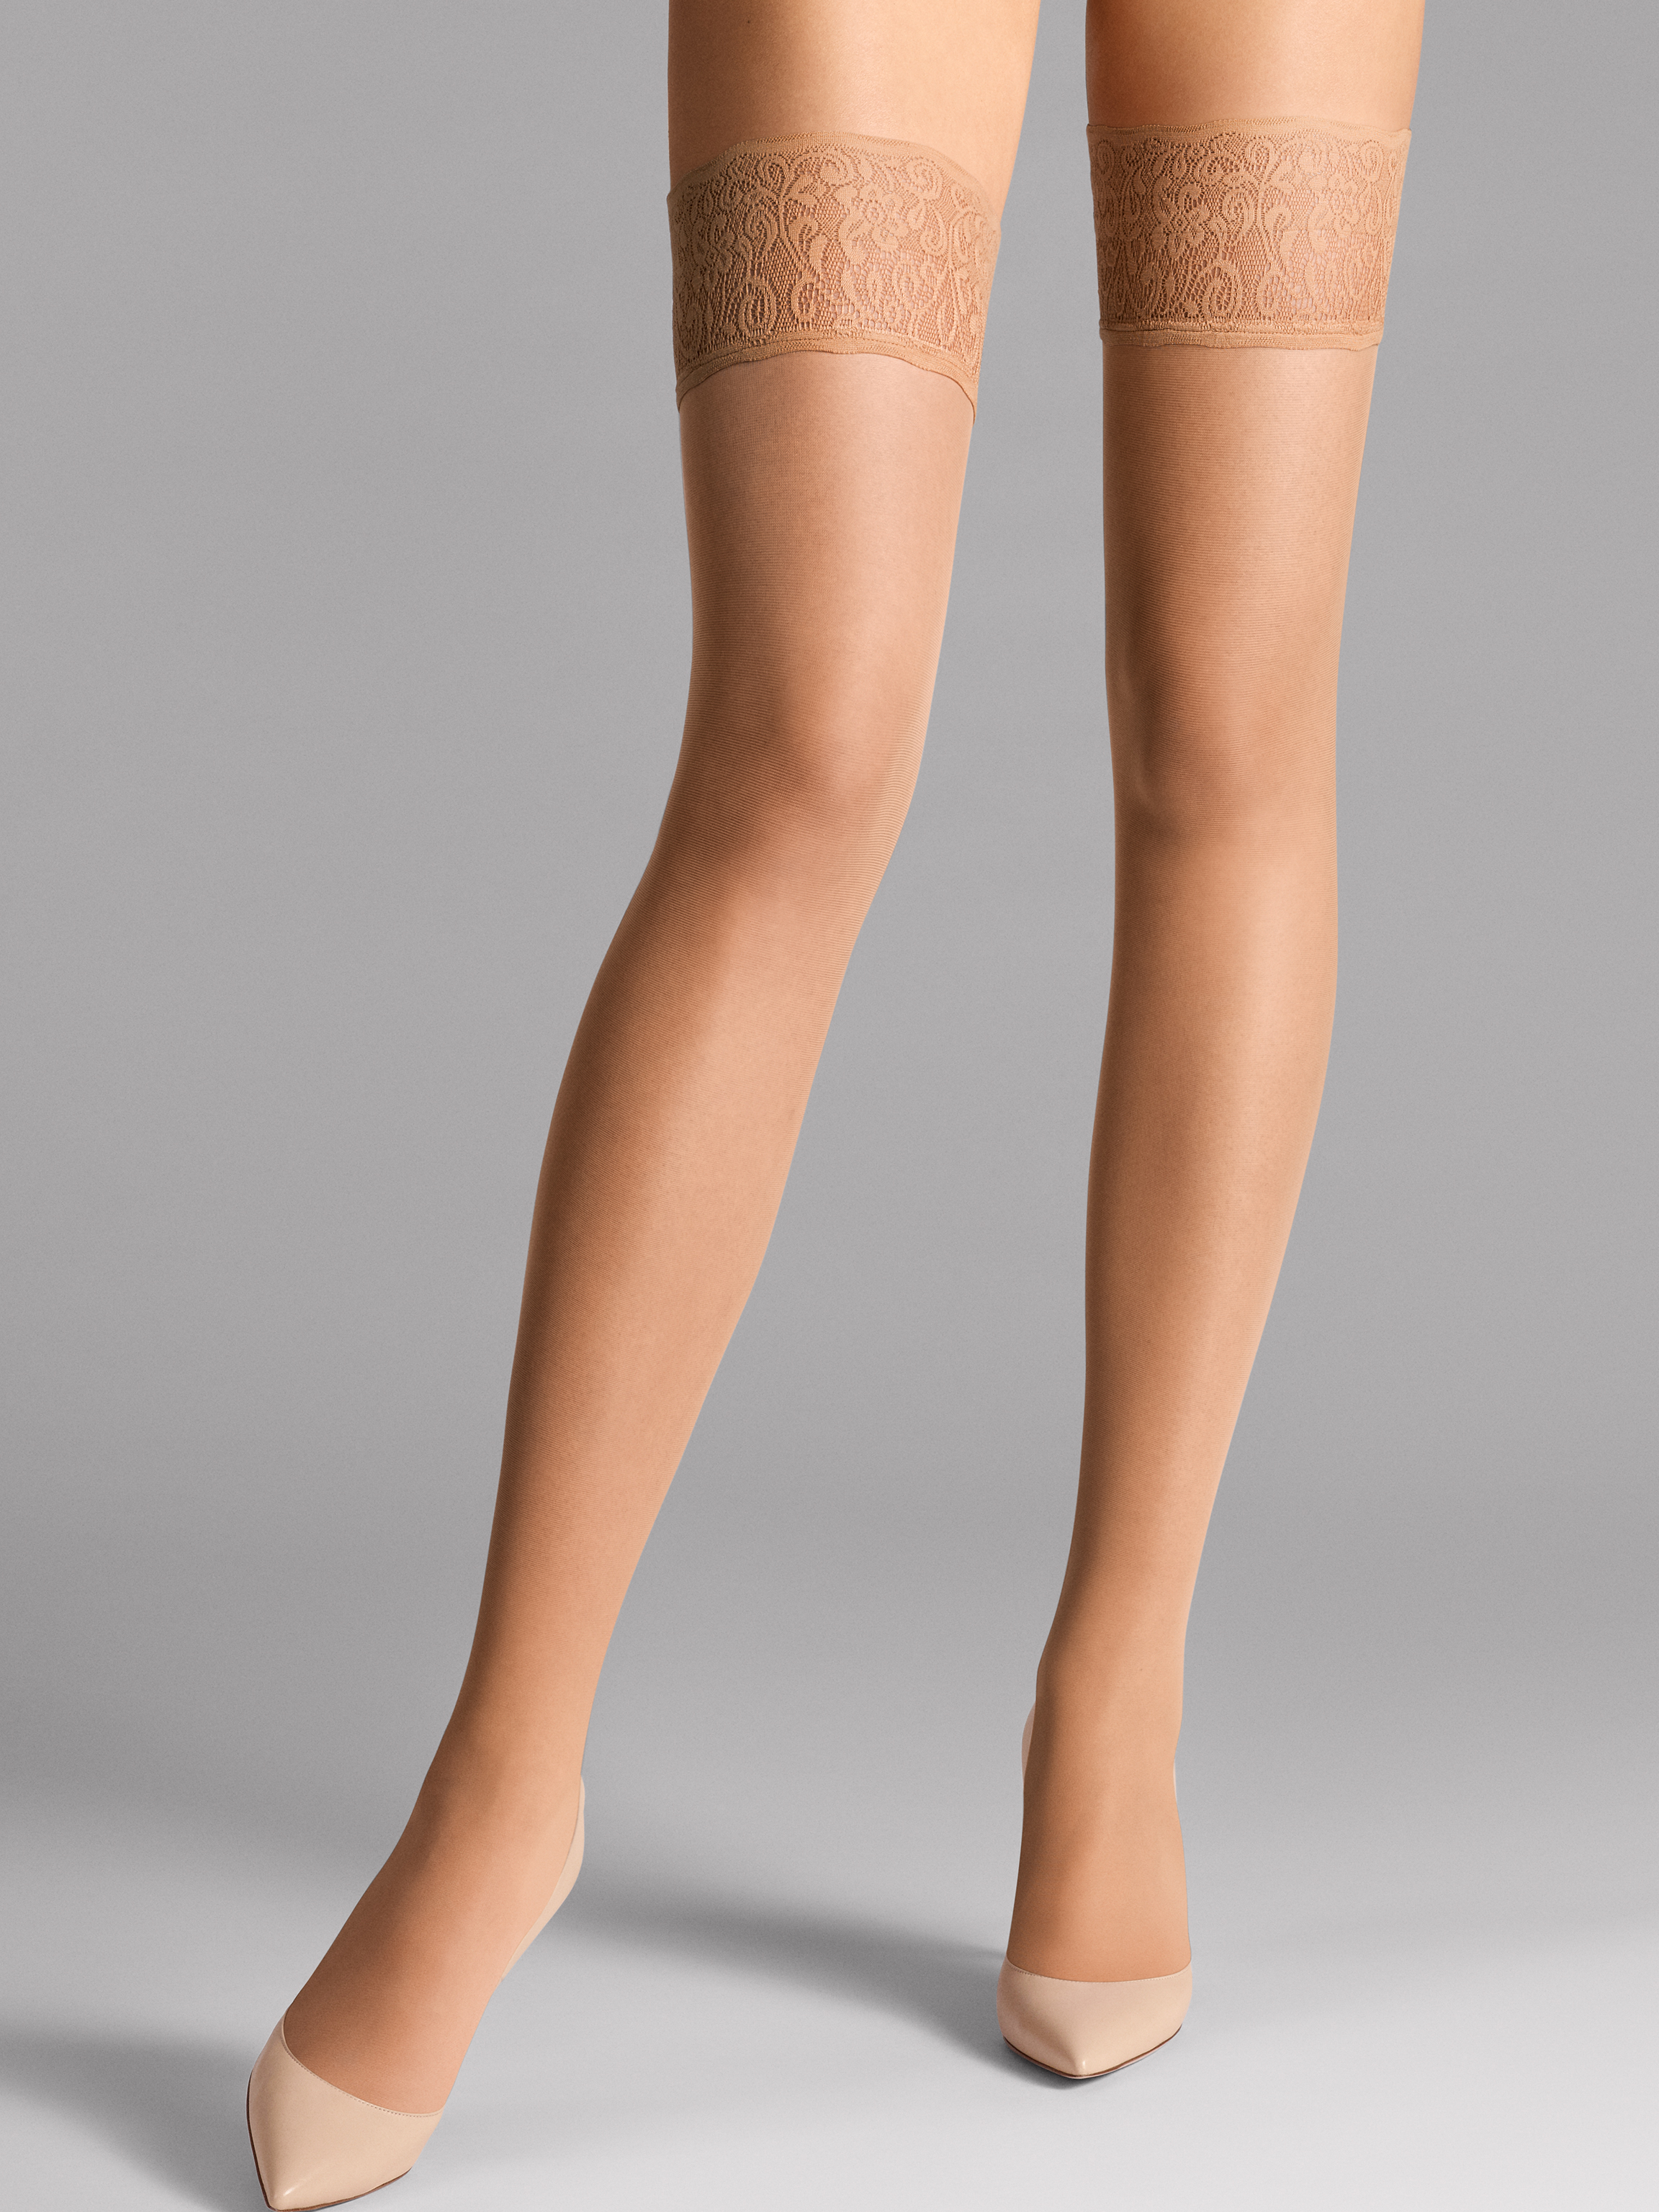 Wolford Apparel & Accessories > Clothing > 15 Stay-Up Lace